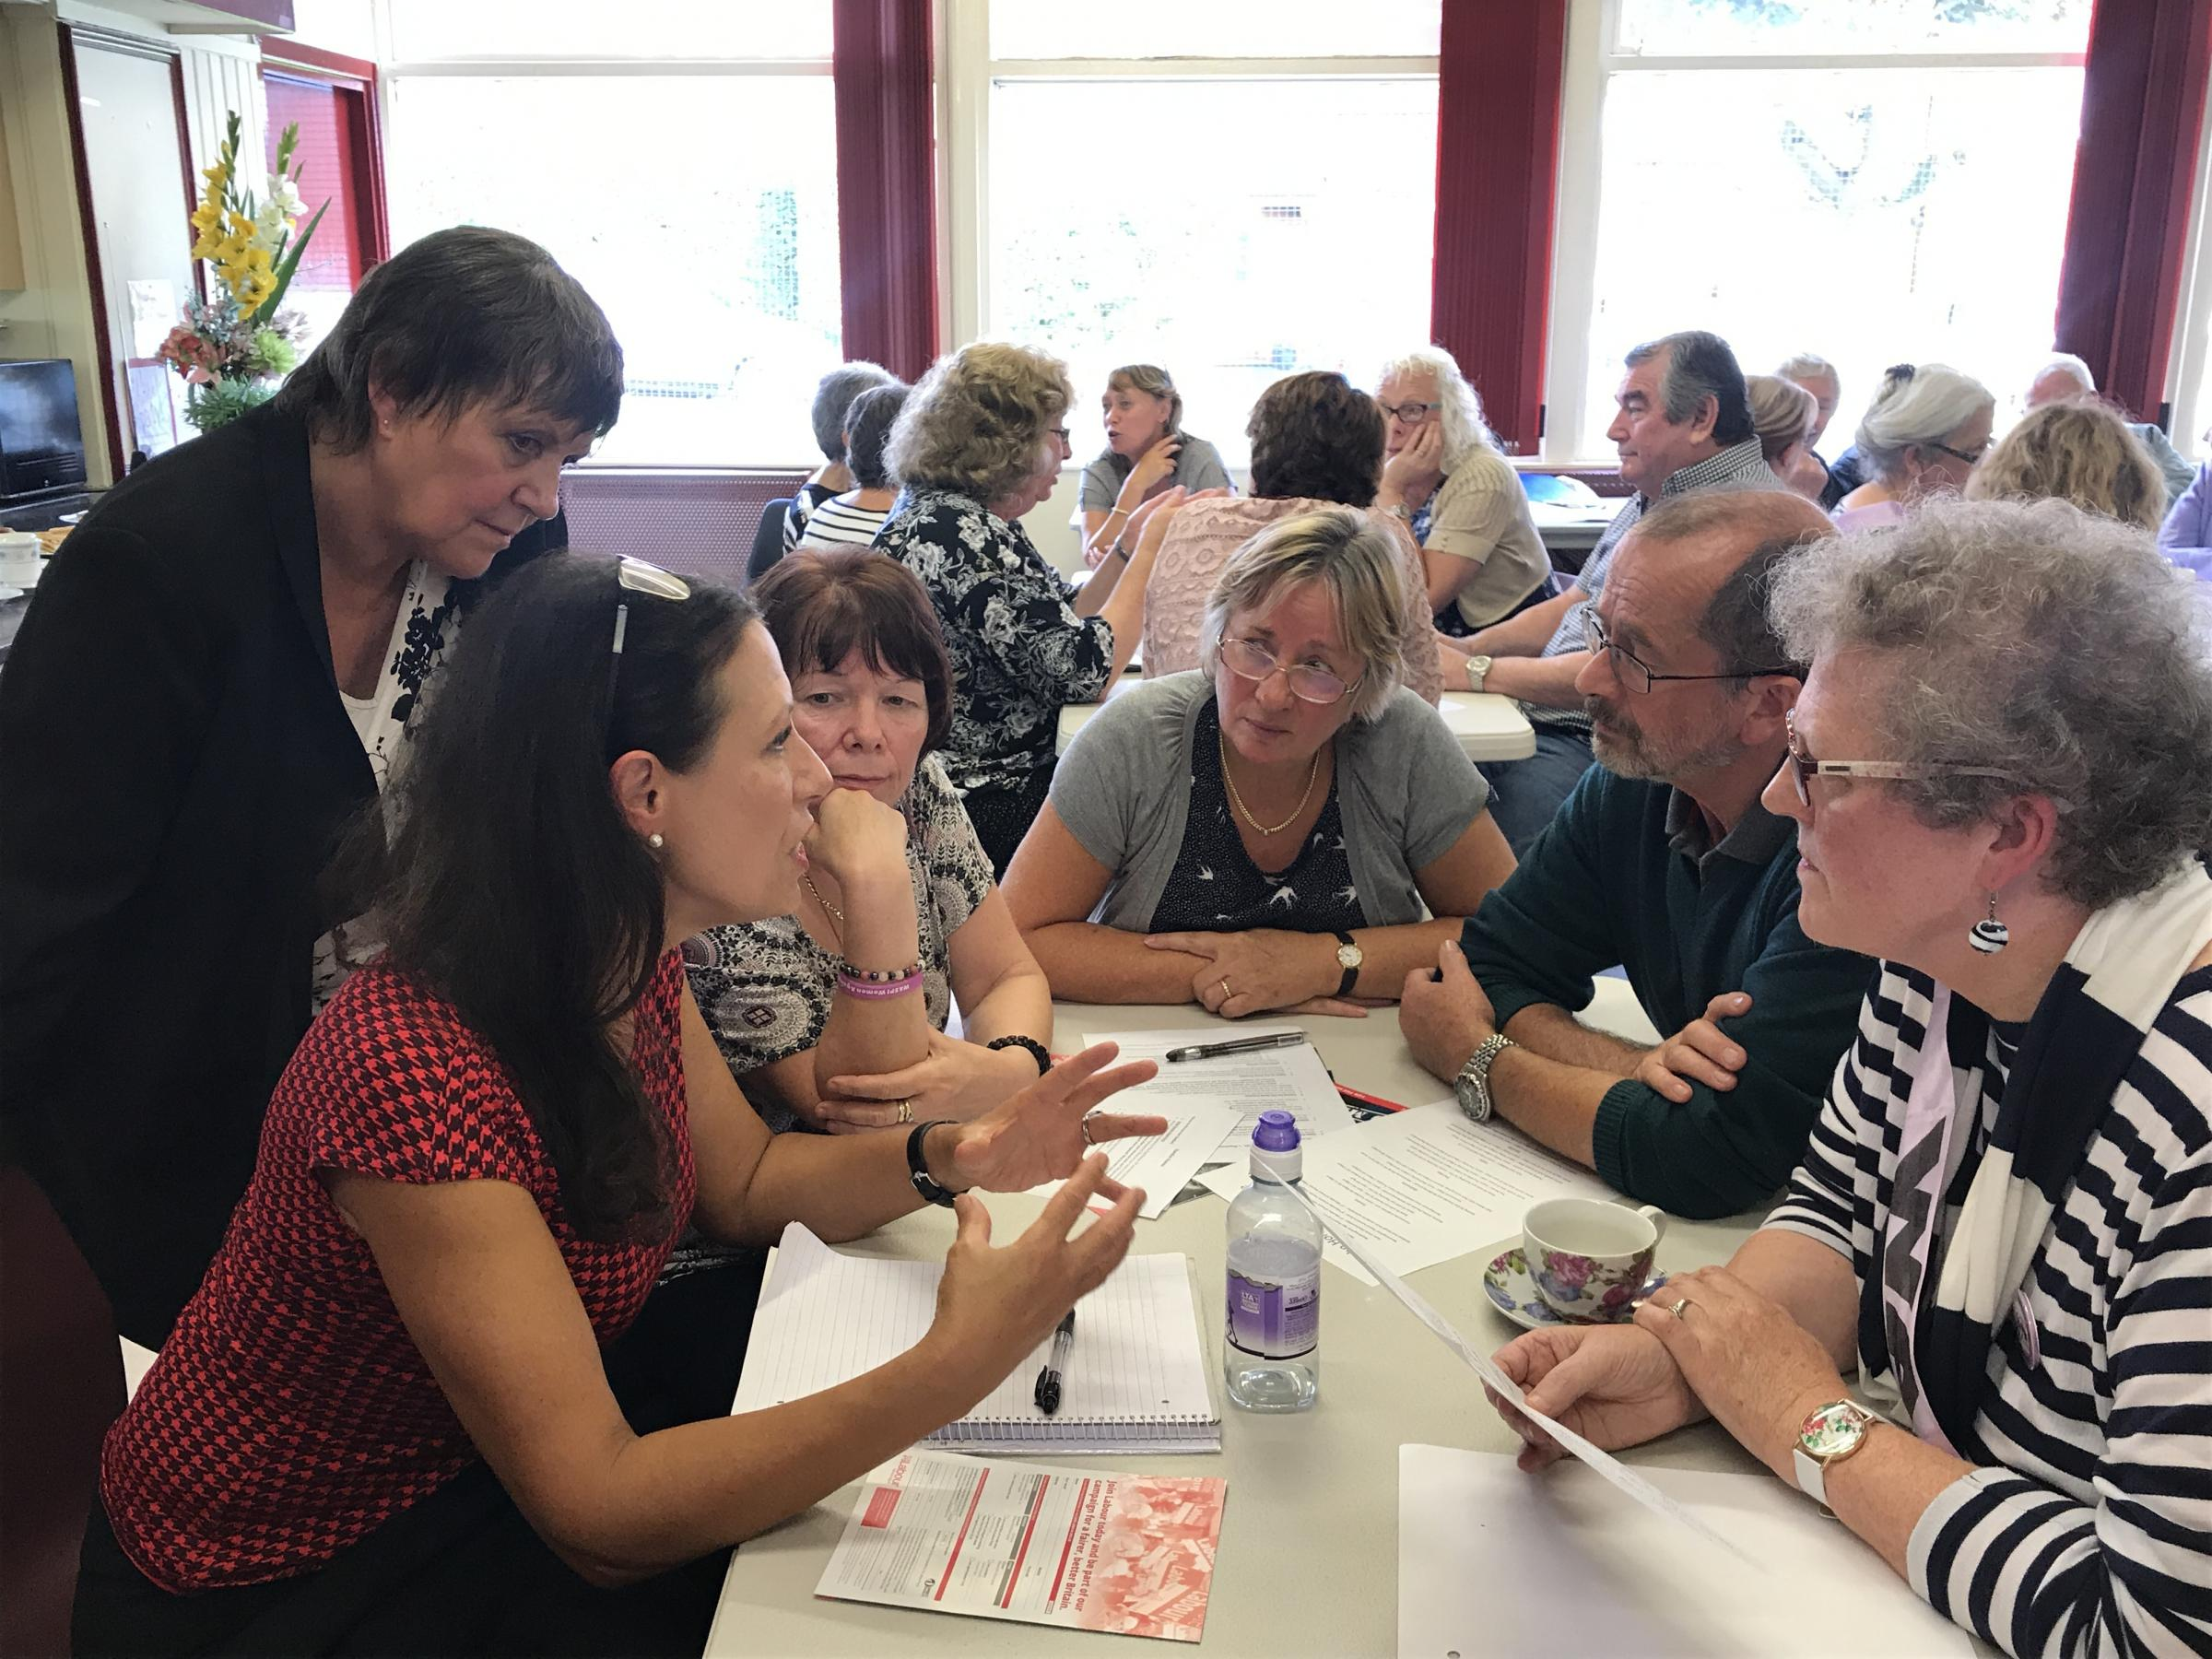 Julie Hilling and Debbie Abrahams MP, Labour's Shadow Secretary of State for Work and Pensions met with pensioners and local residents at the John Holt Centre in Westhoughton